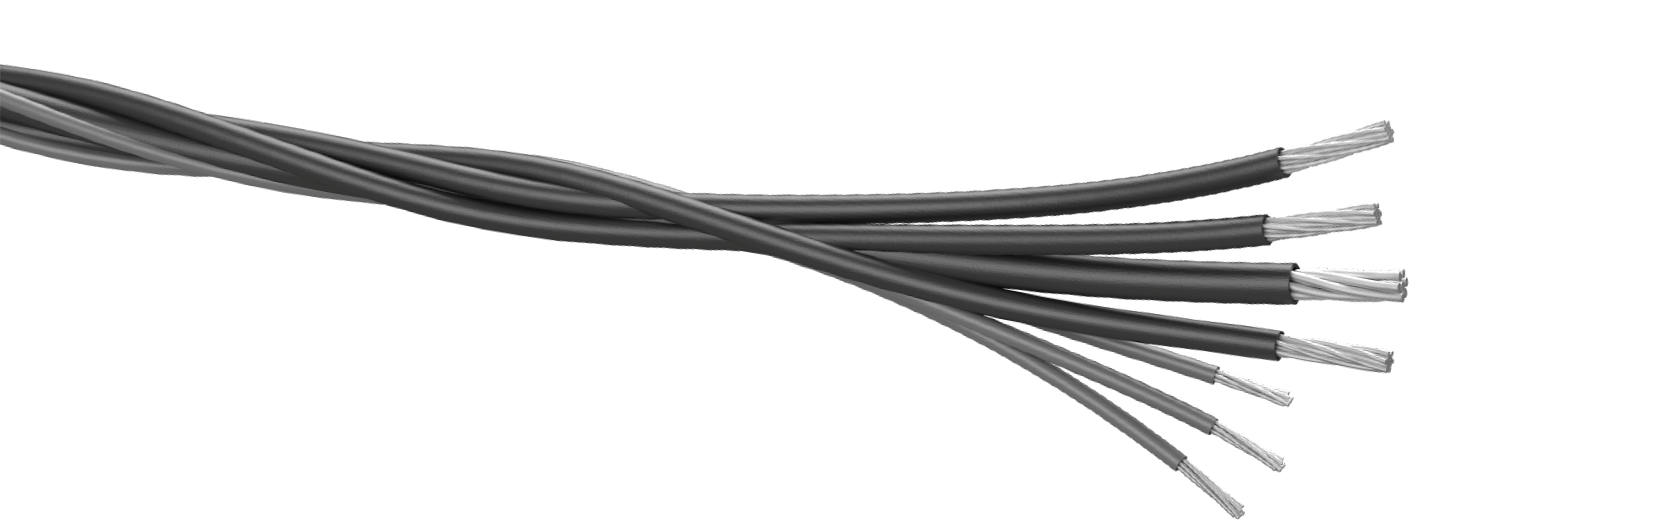 nexans-cable-10